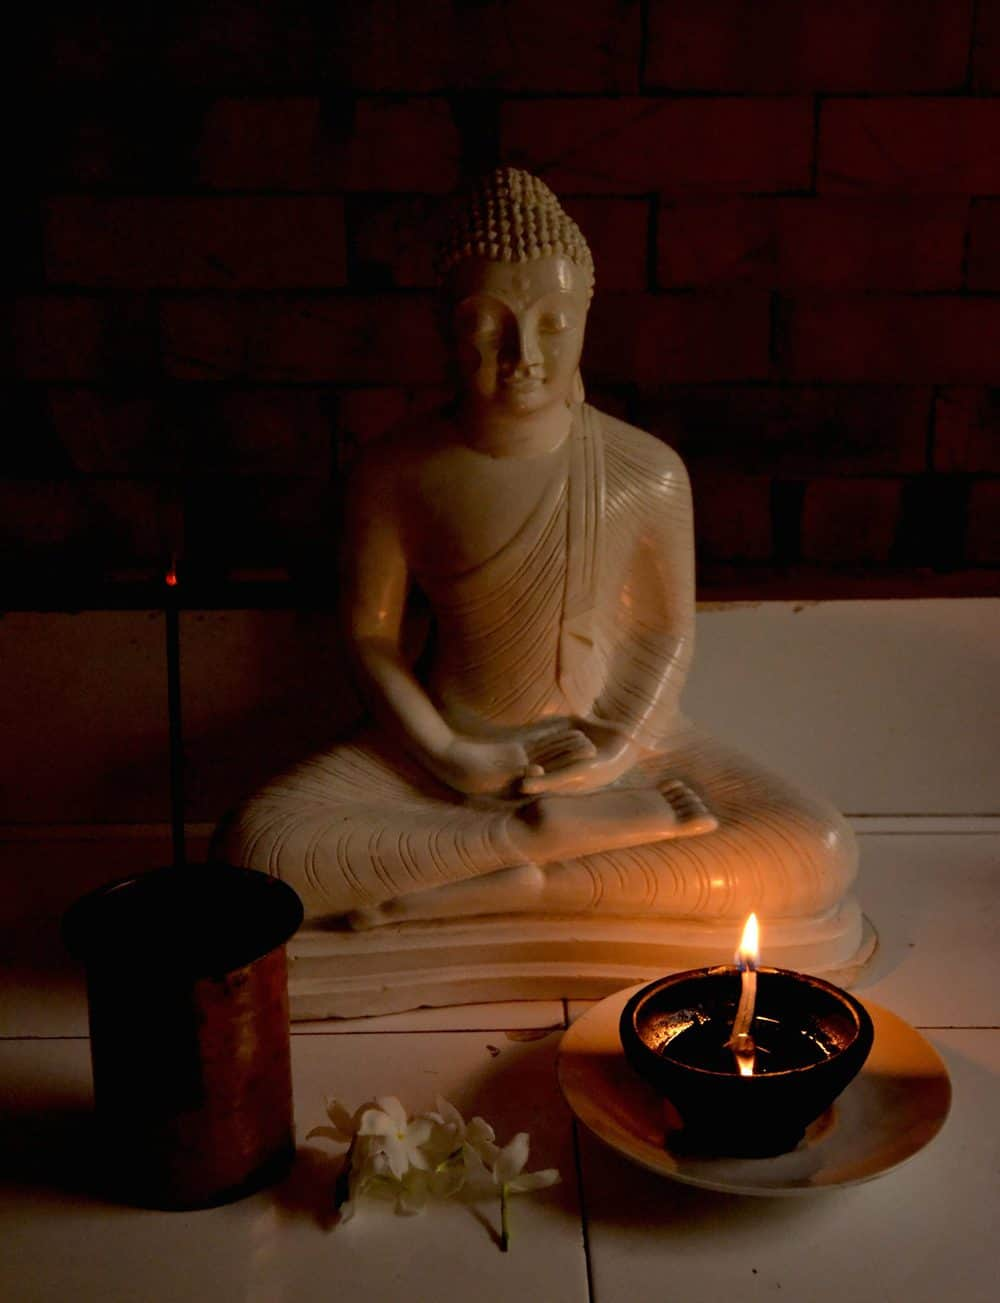 Buddha statue with a candle.